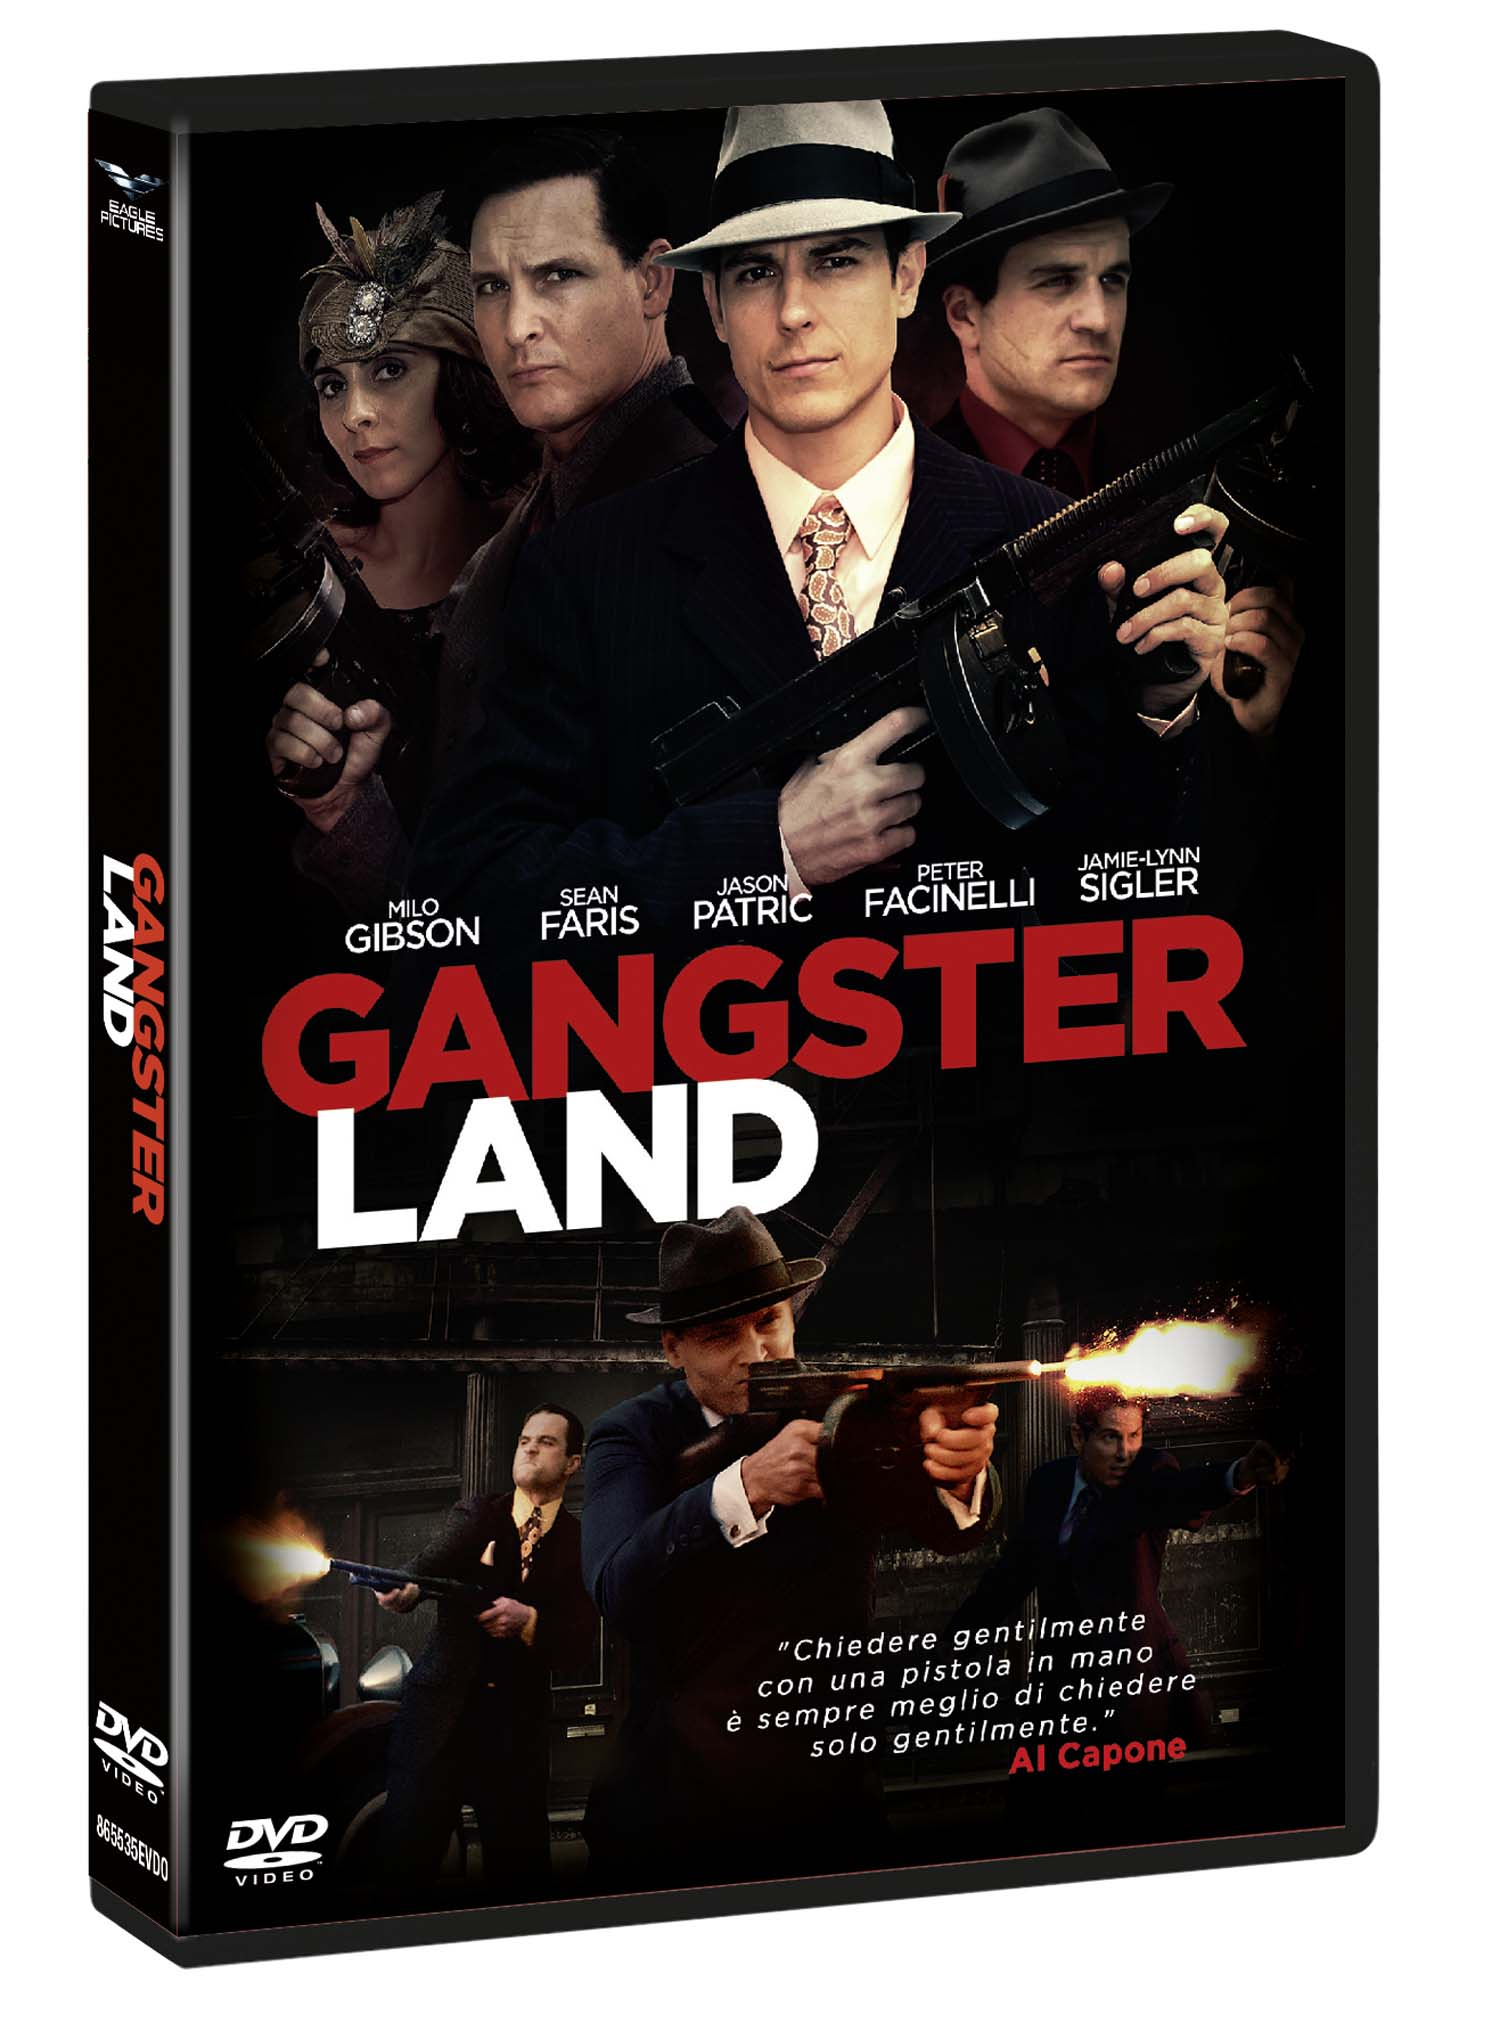 GANGSTER LAND (DVD)